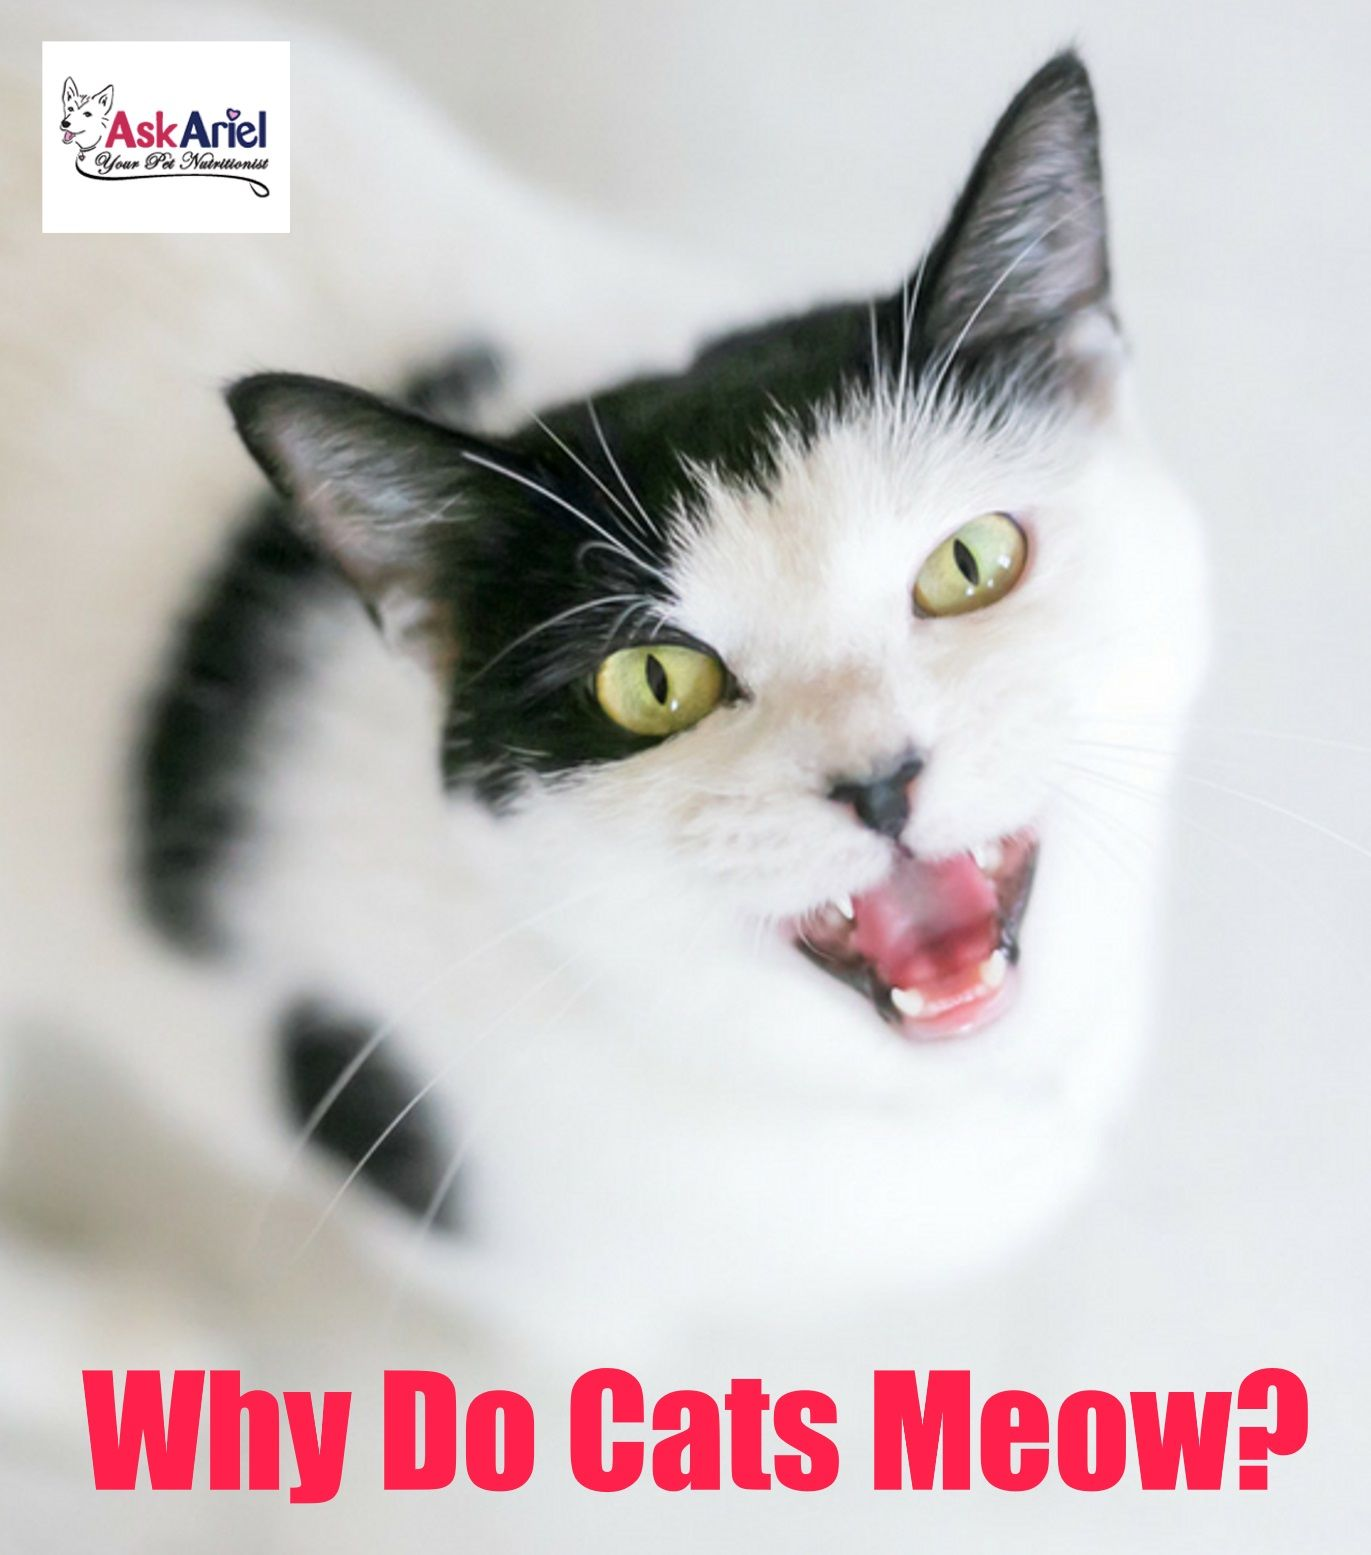 Do cats talk to each other? Of course they do, but meowing